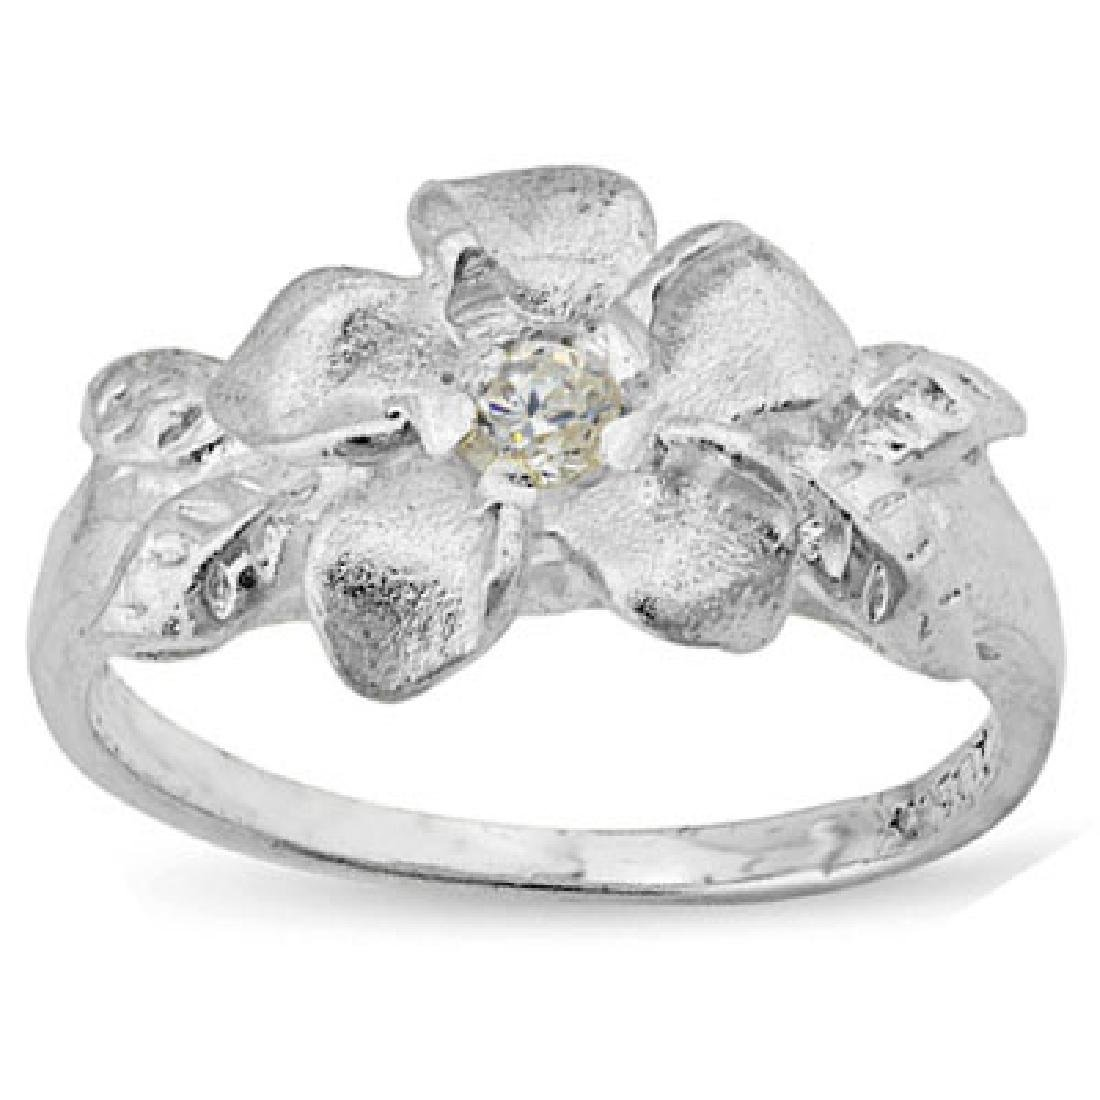 PLUMERIA RING WITH 0.925 STERLING SILVER PLATINUM OVER